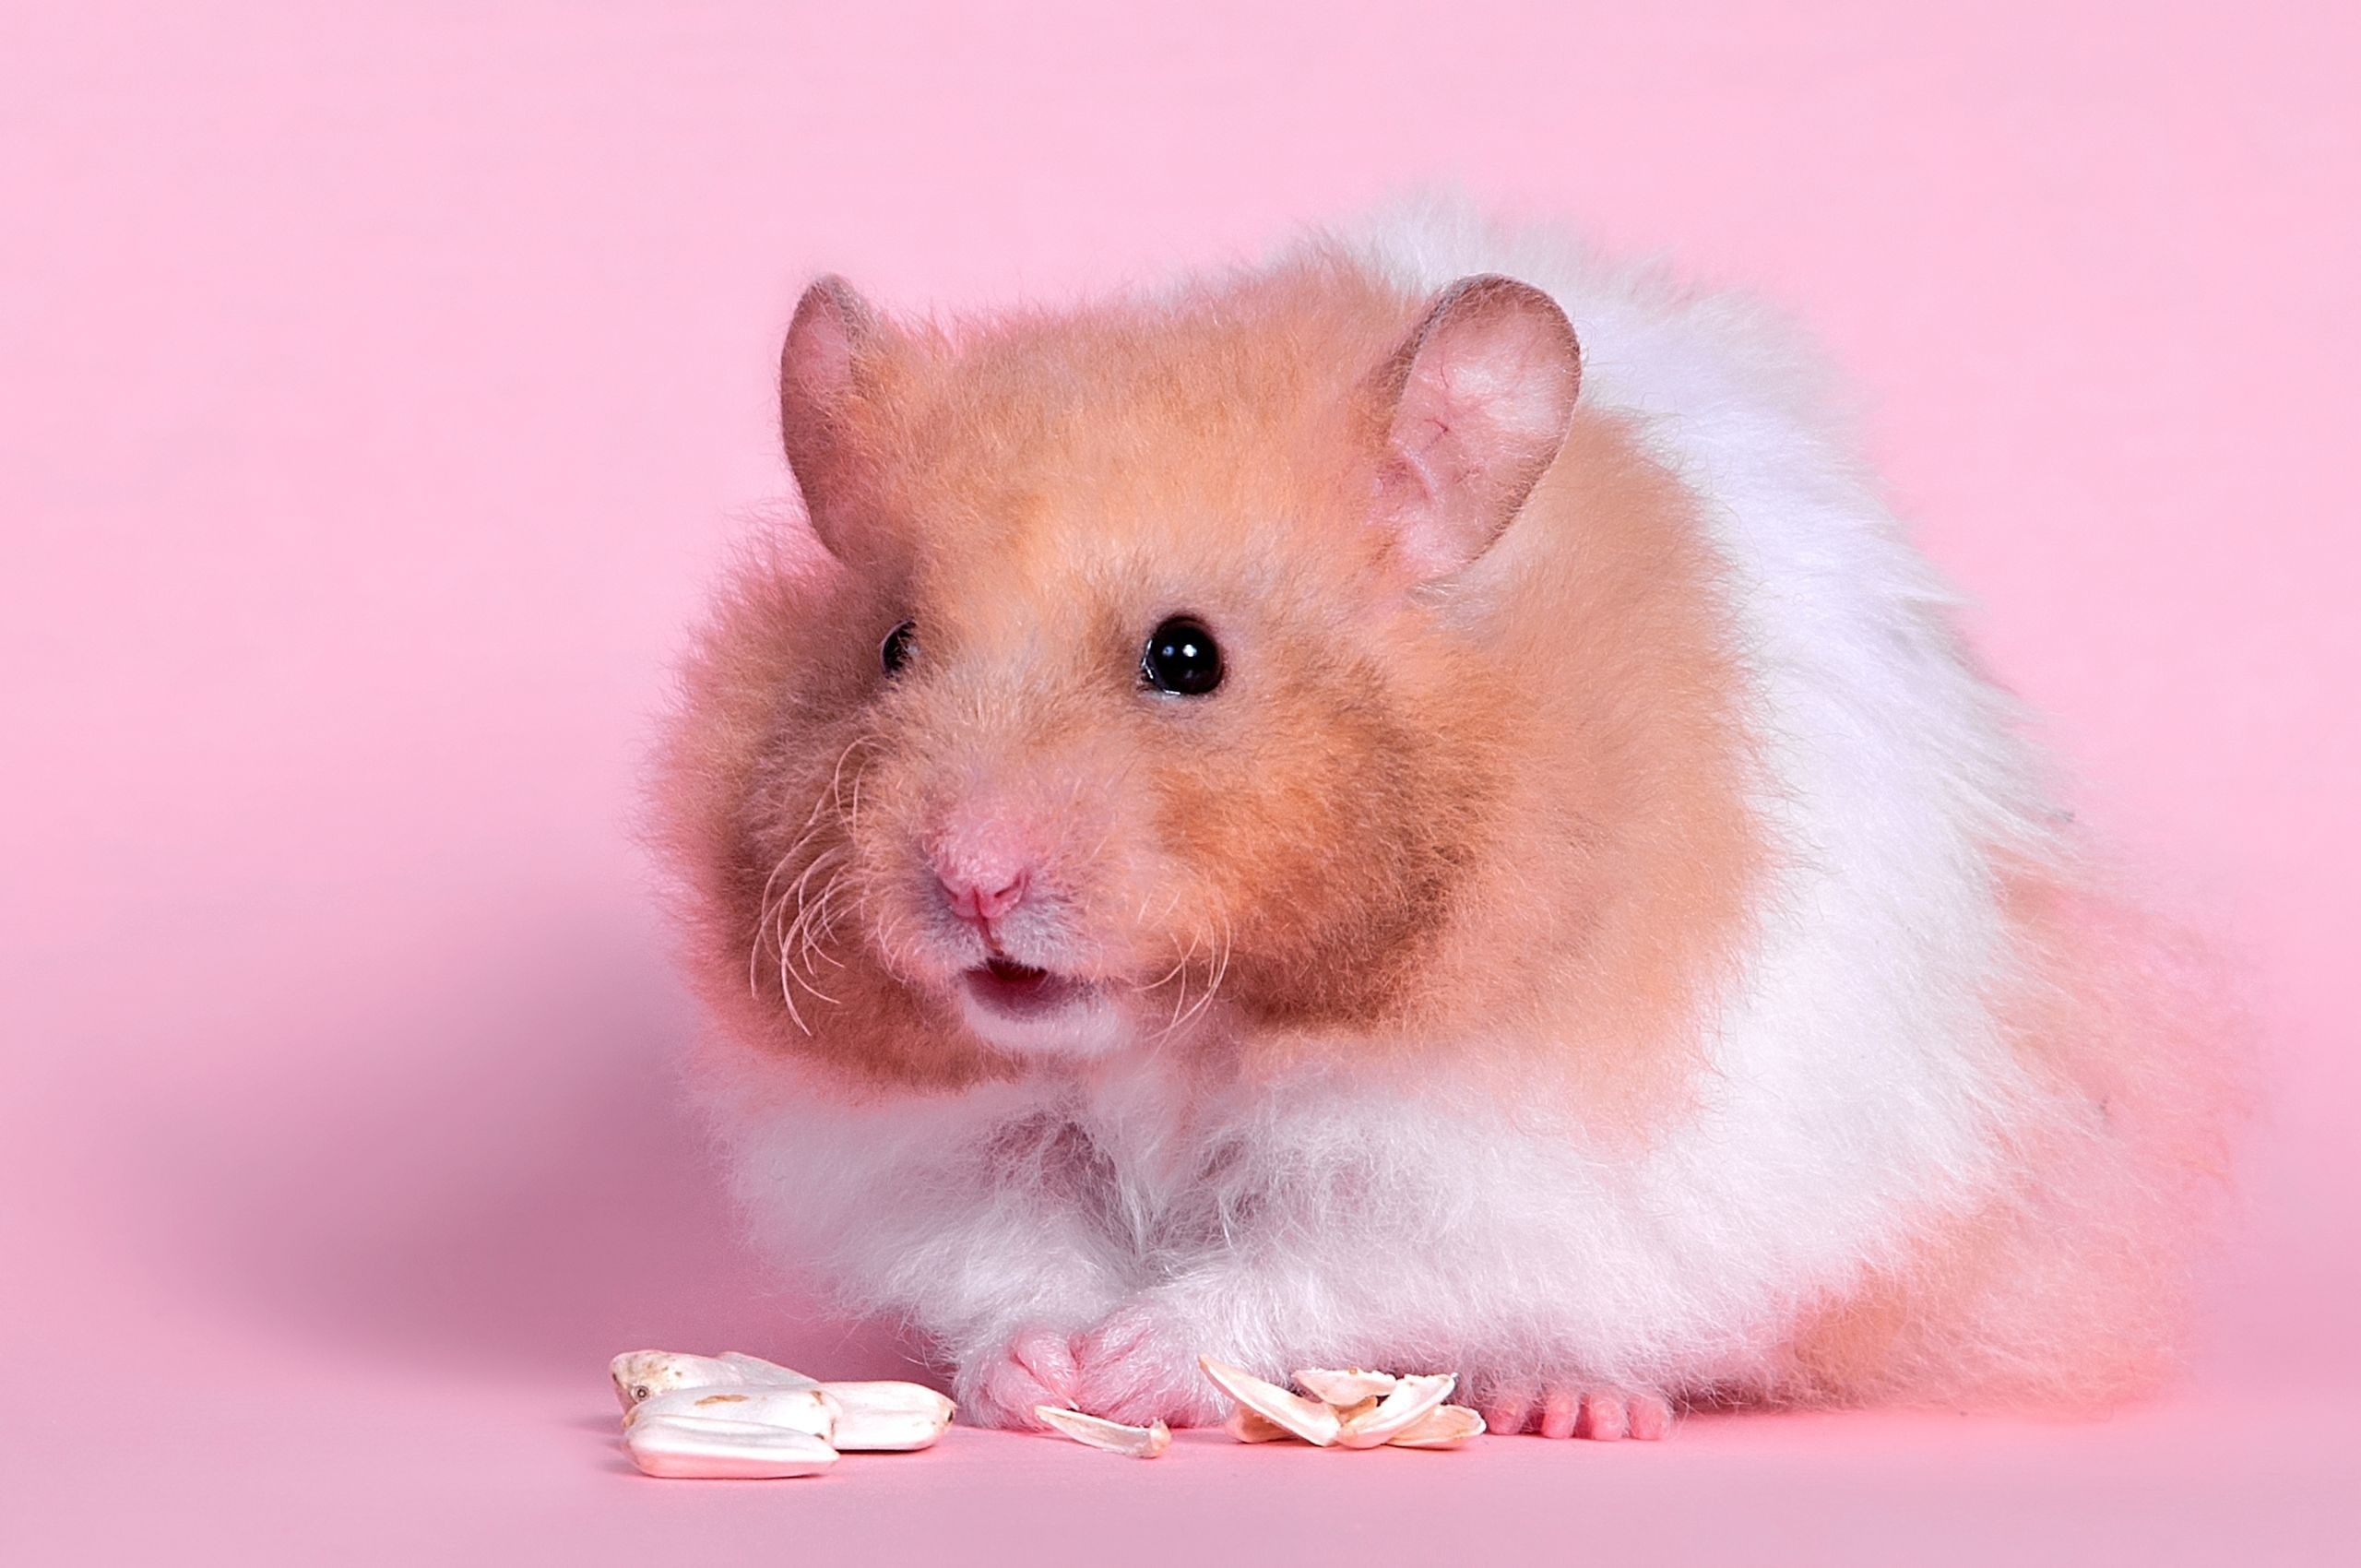 56967 download wallpaper Animals, Hamster, Fluffy, Color, Rodent, Food screensavers and pictures for free